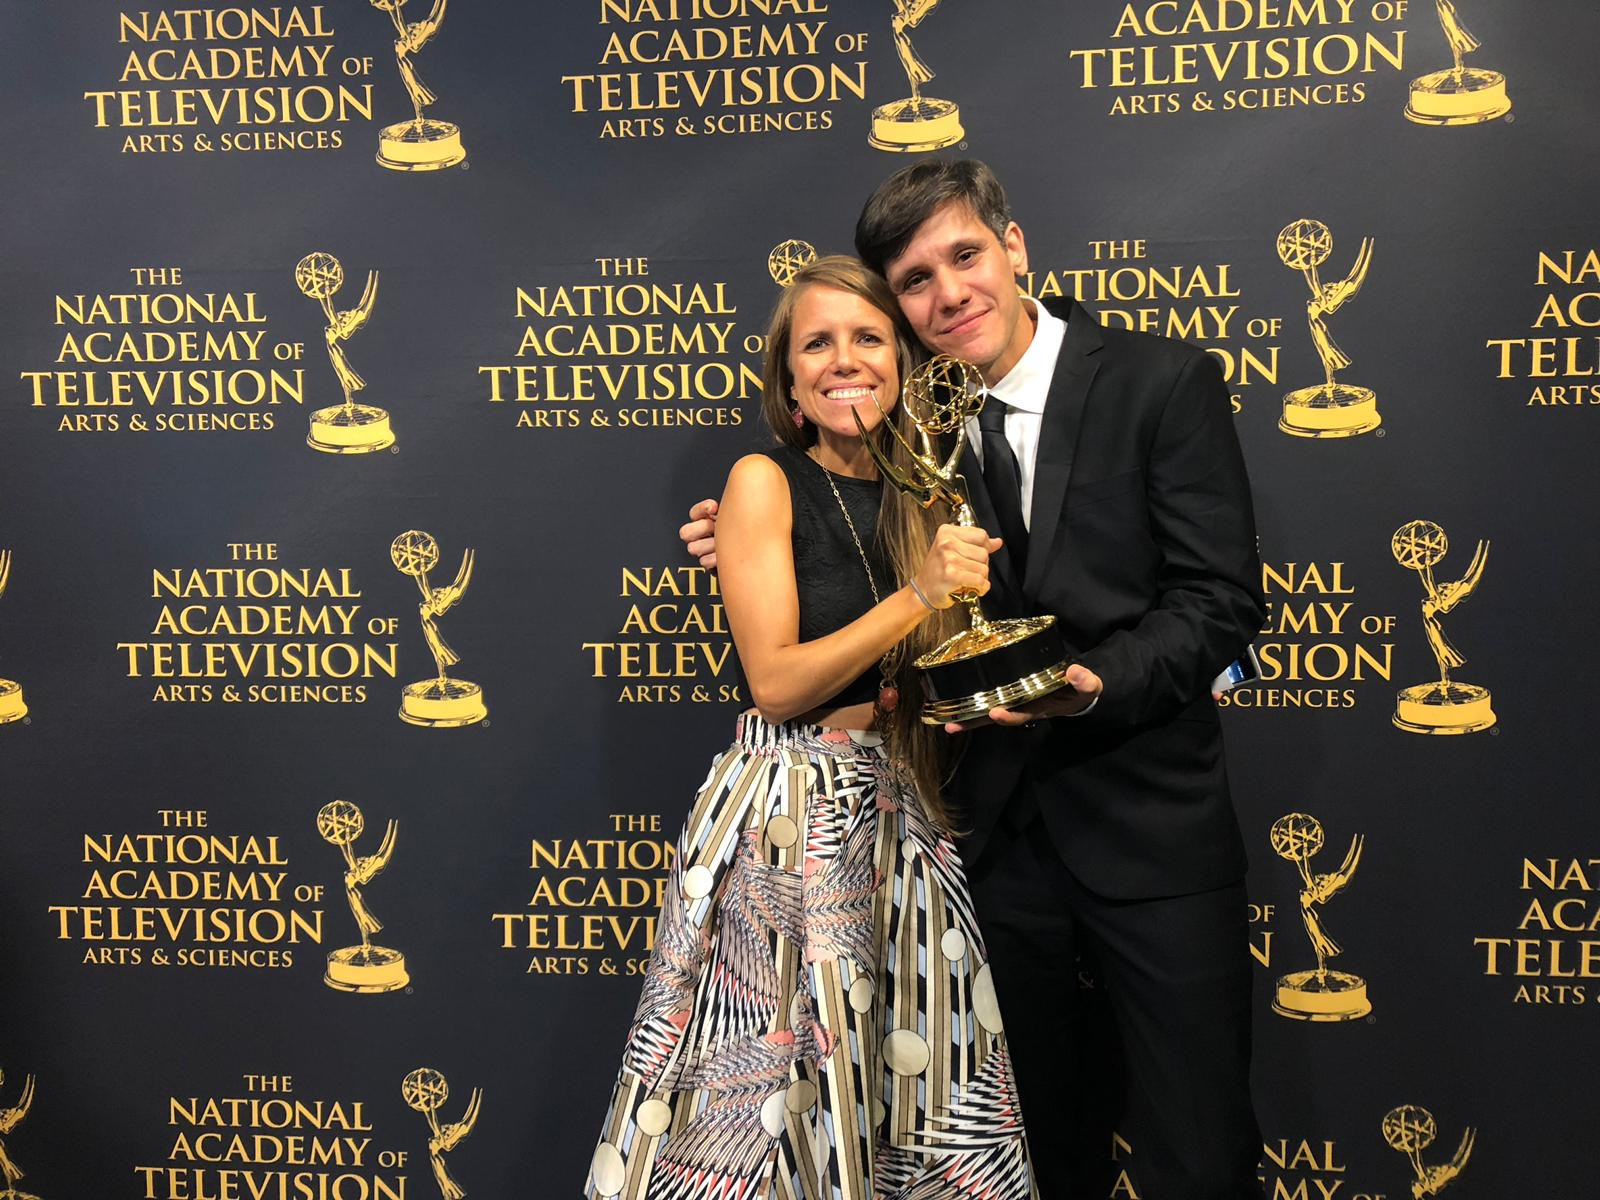 News and Documentary Emmy